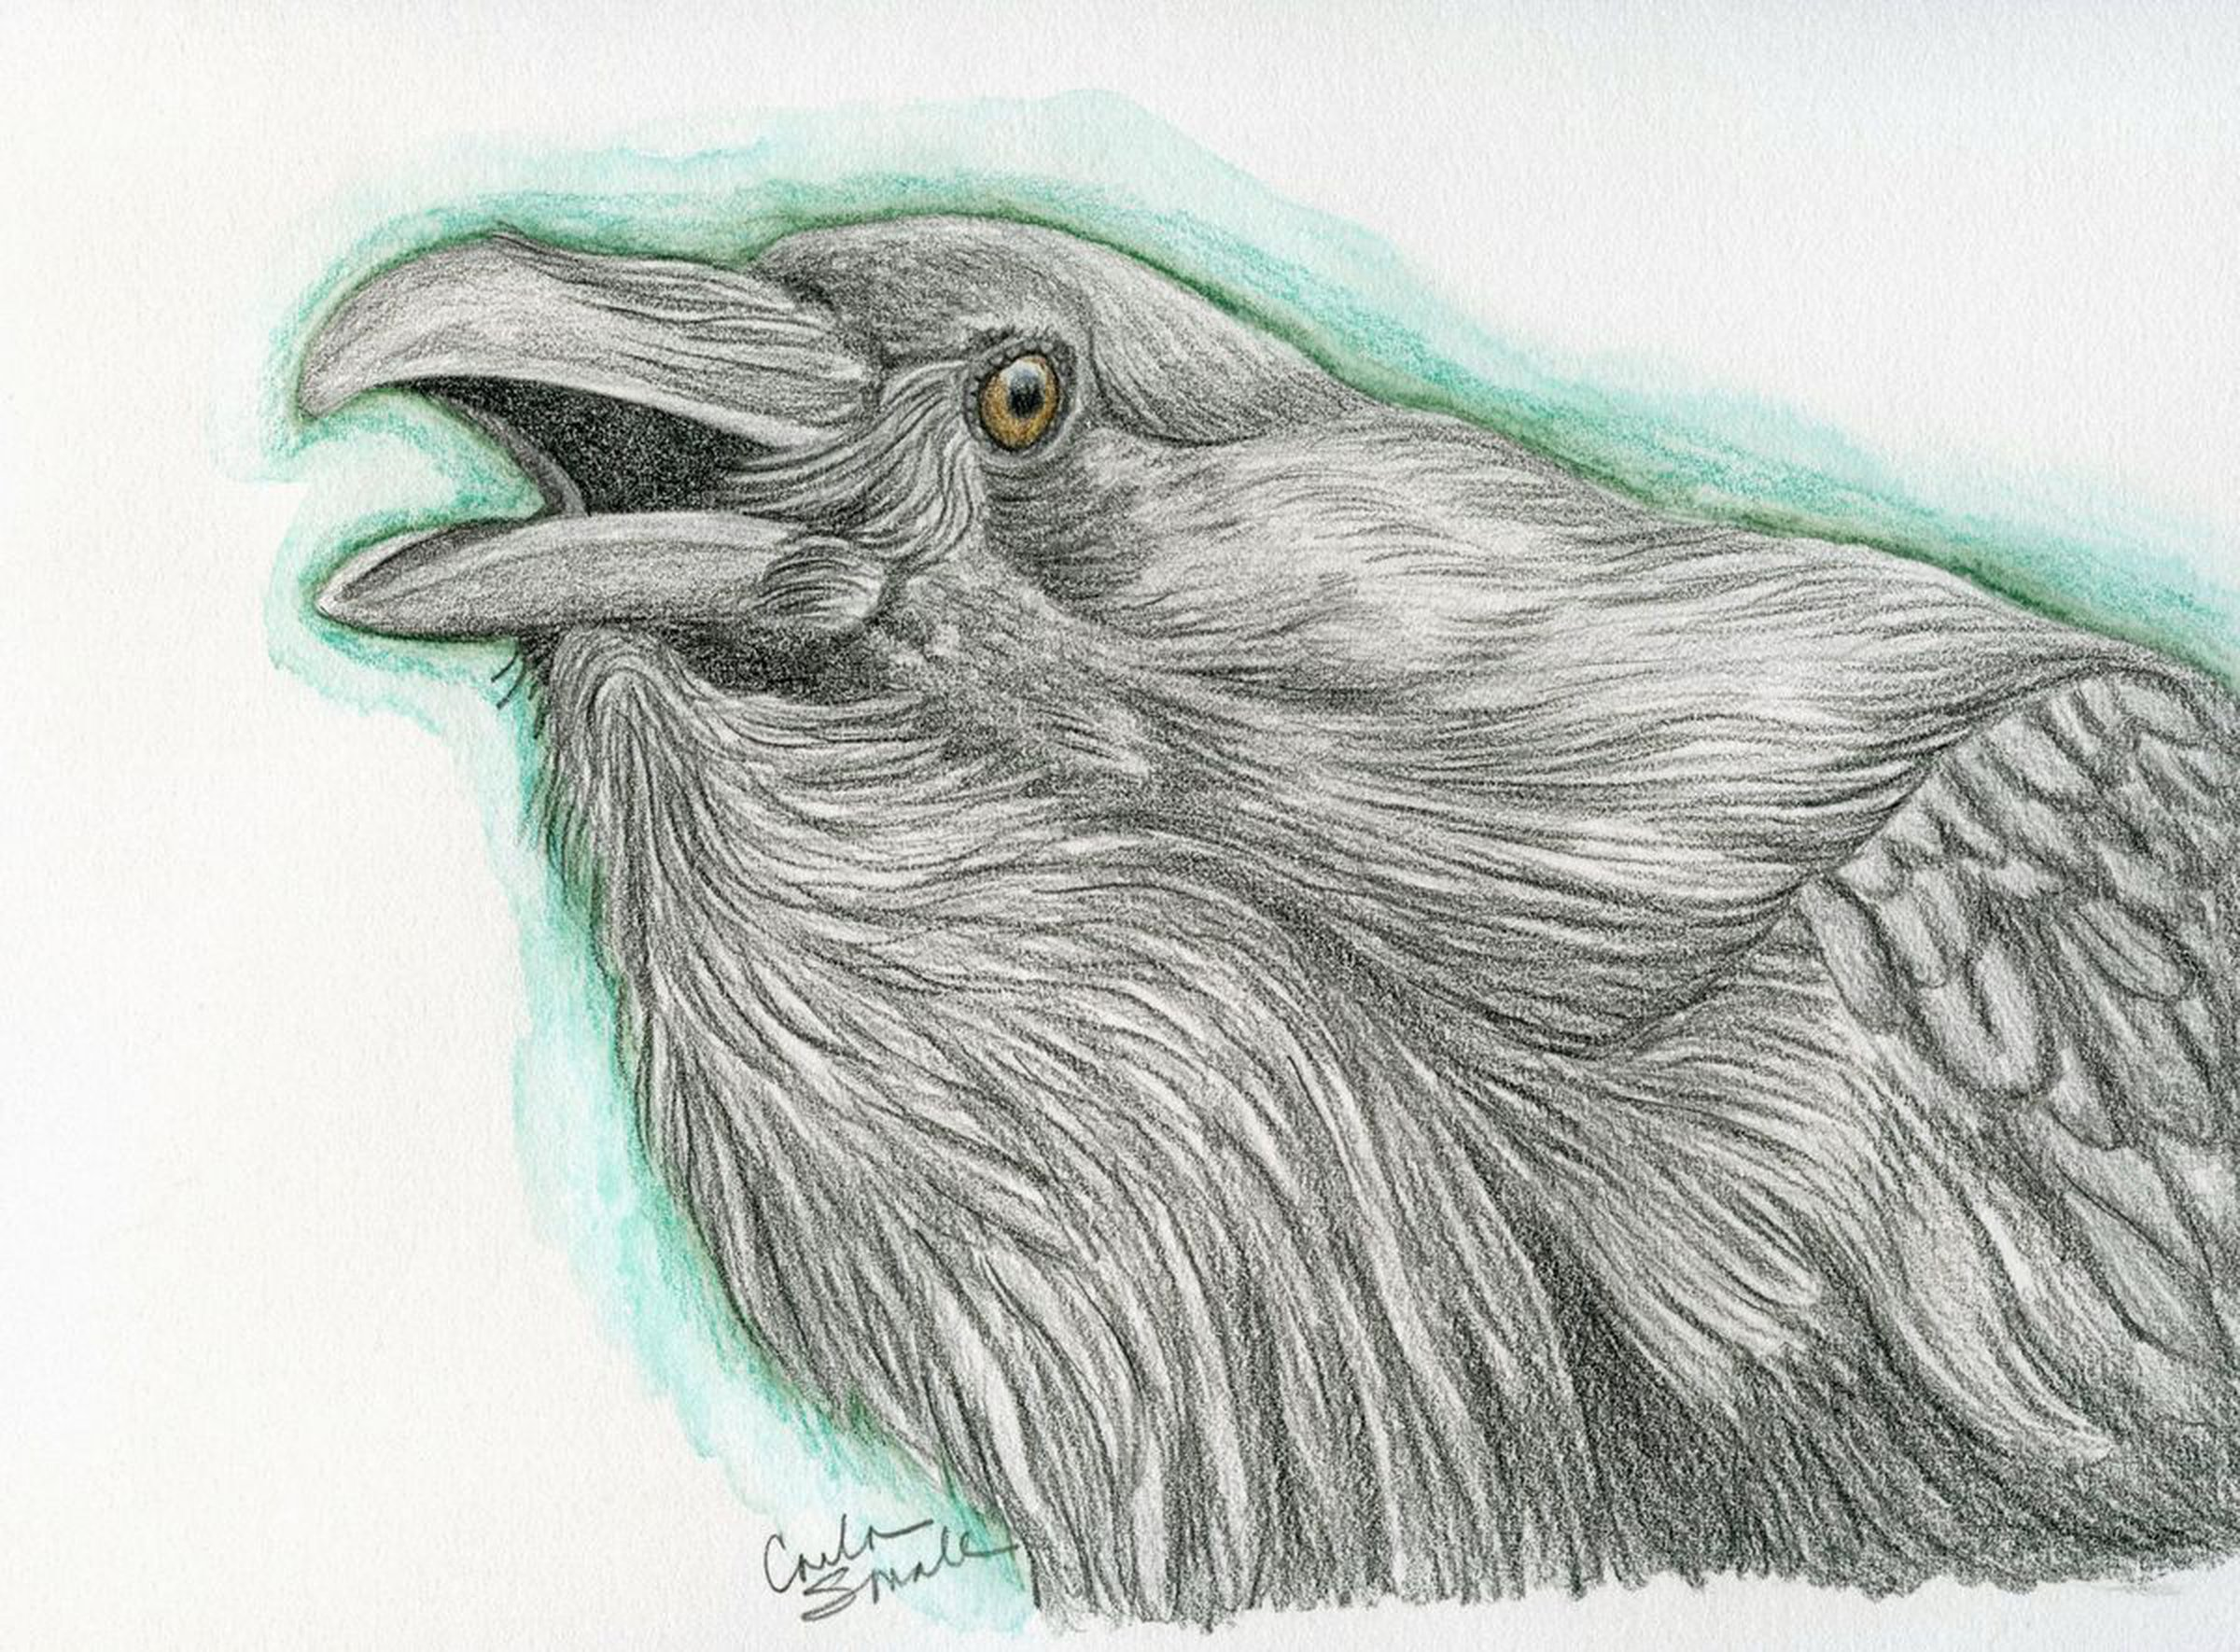 Raven crow bird wildlife art original drawing 7 x 9 carla smale